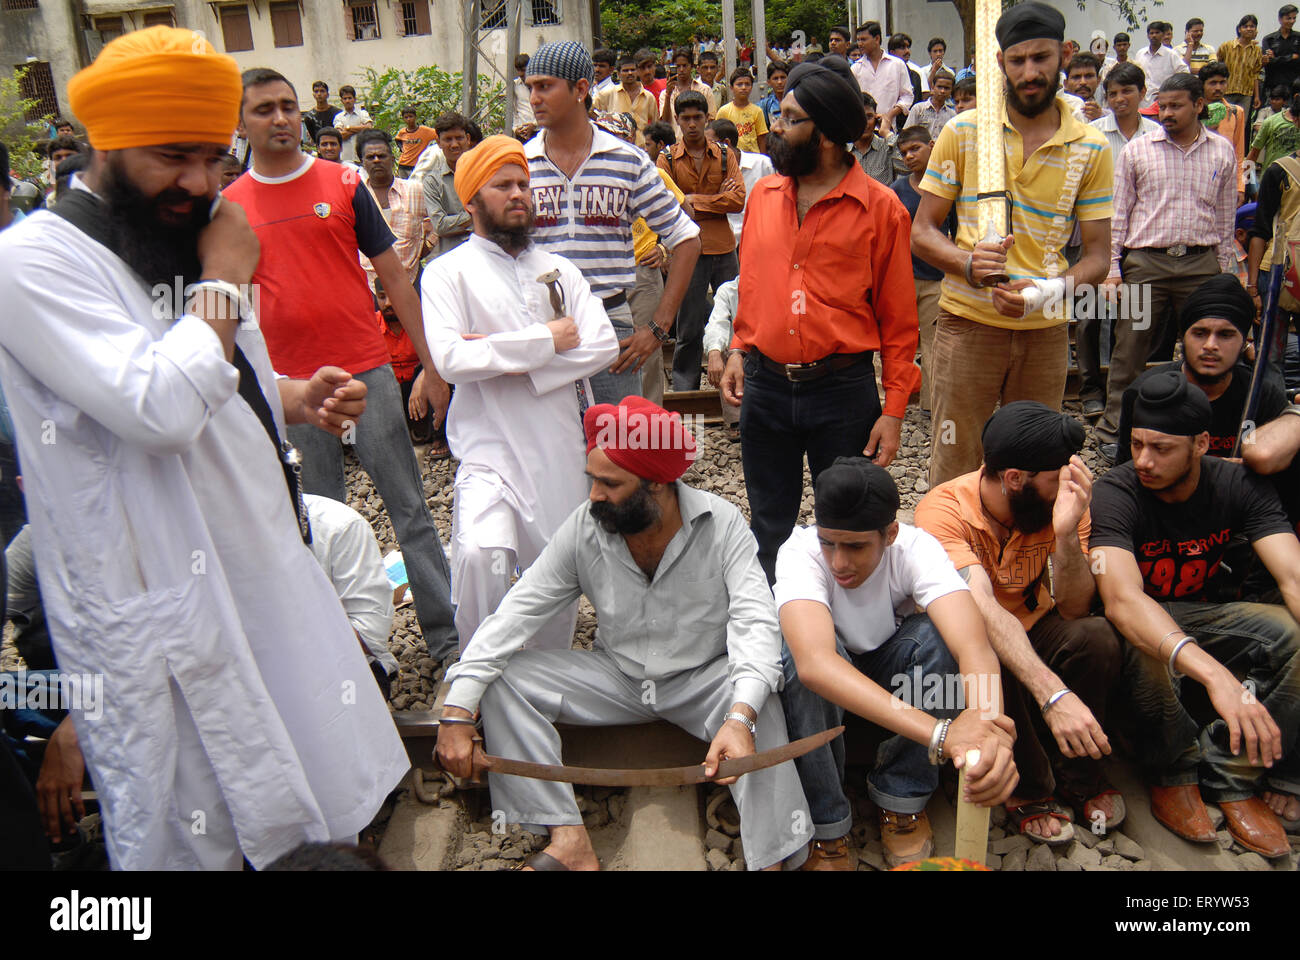 Sikh community block trains protest against firing bodyguard of dera saccha sauda chief ram rahim at Mulund - Stock Image